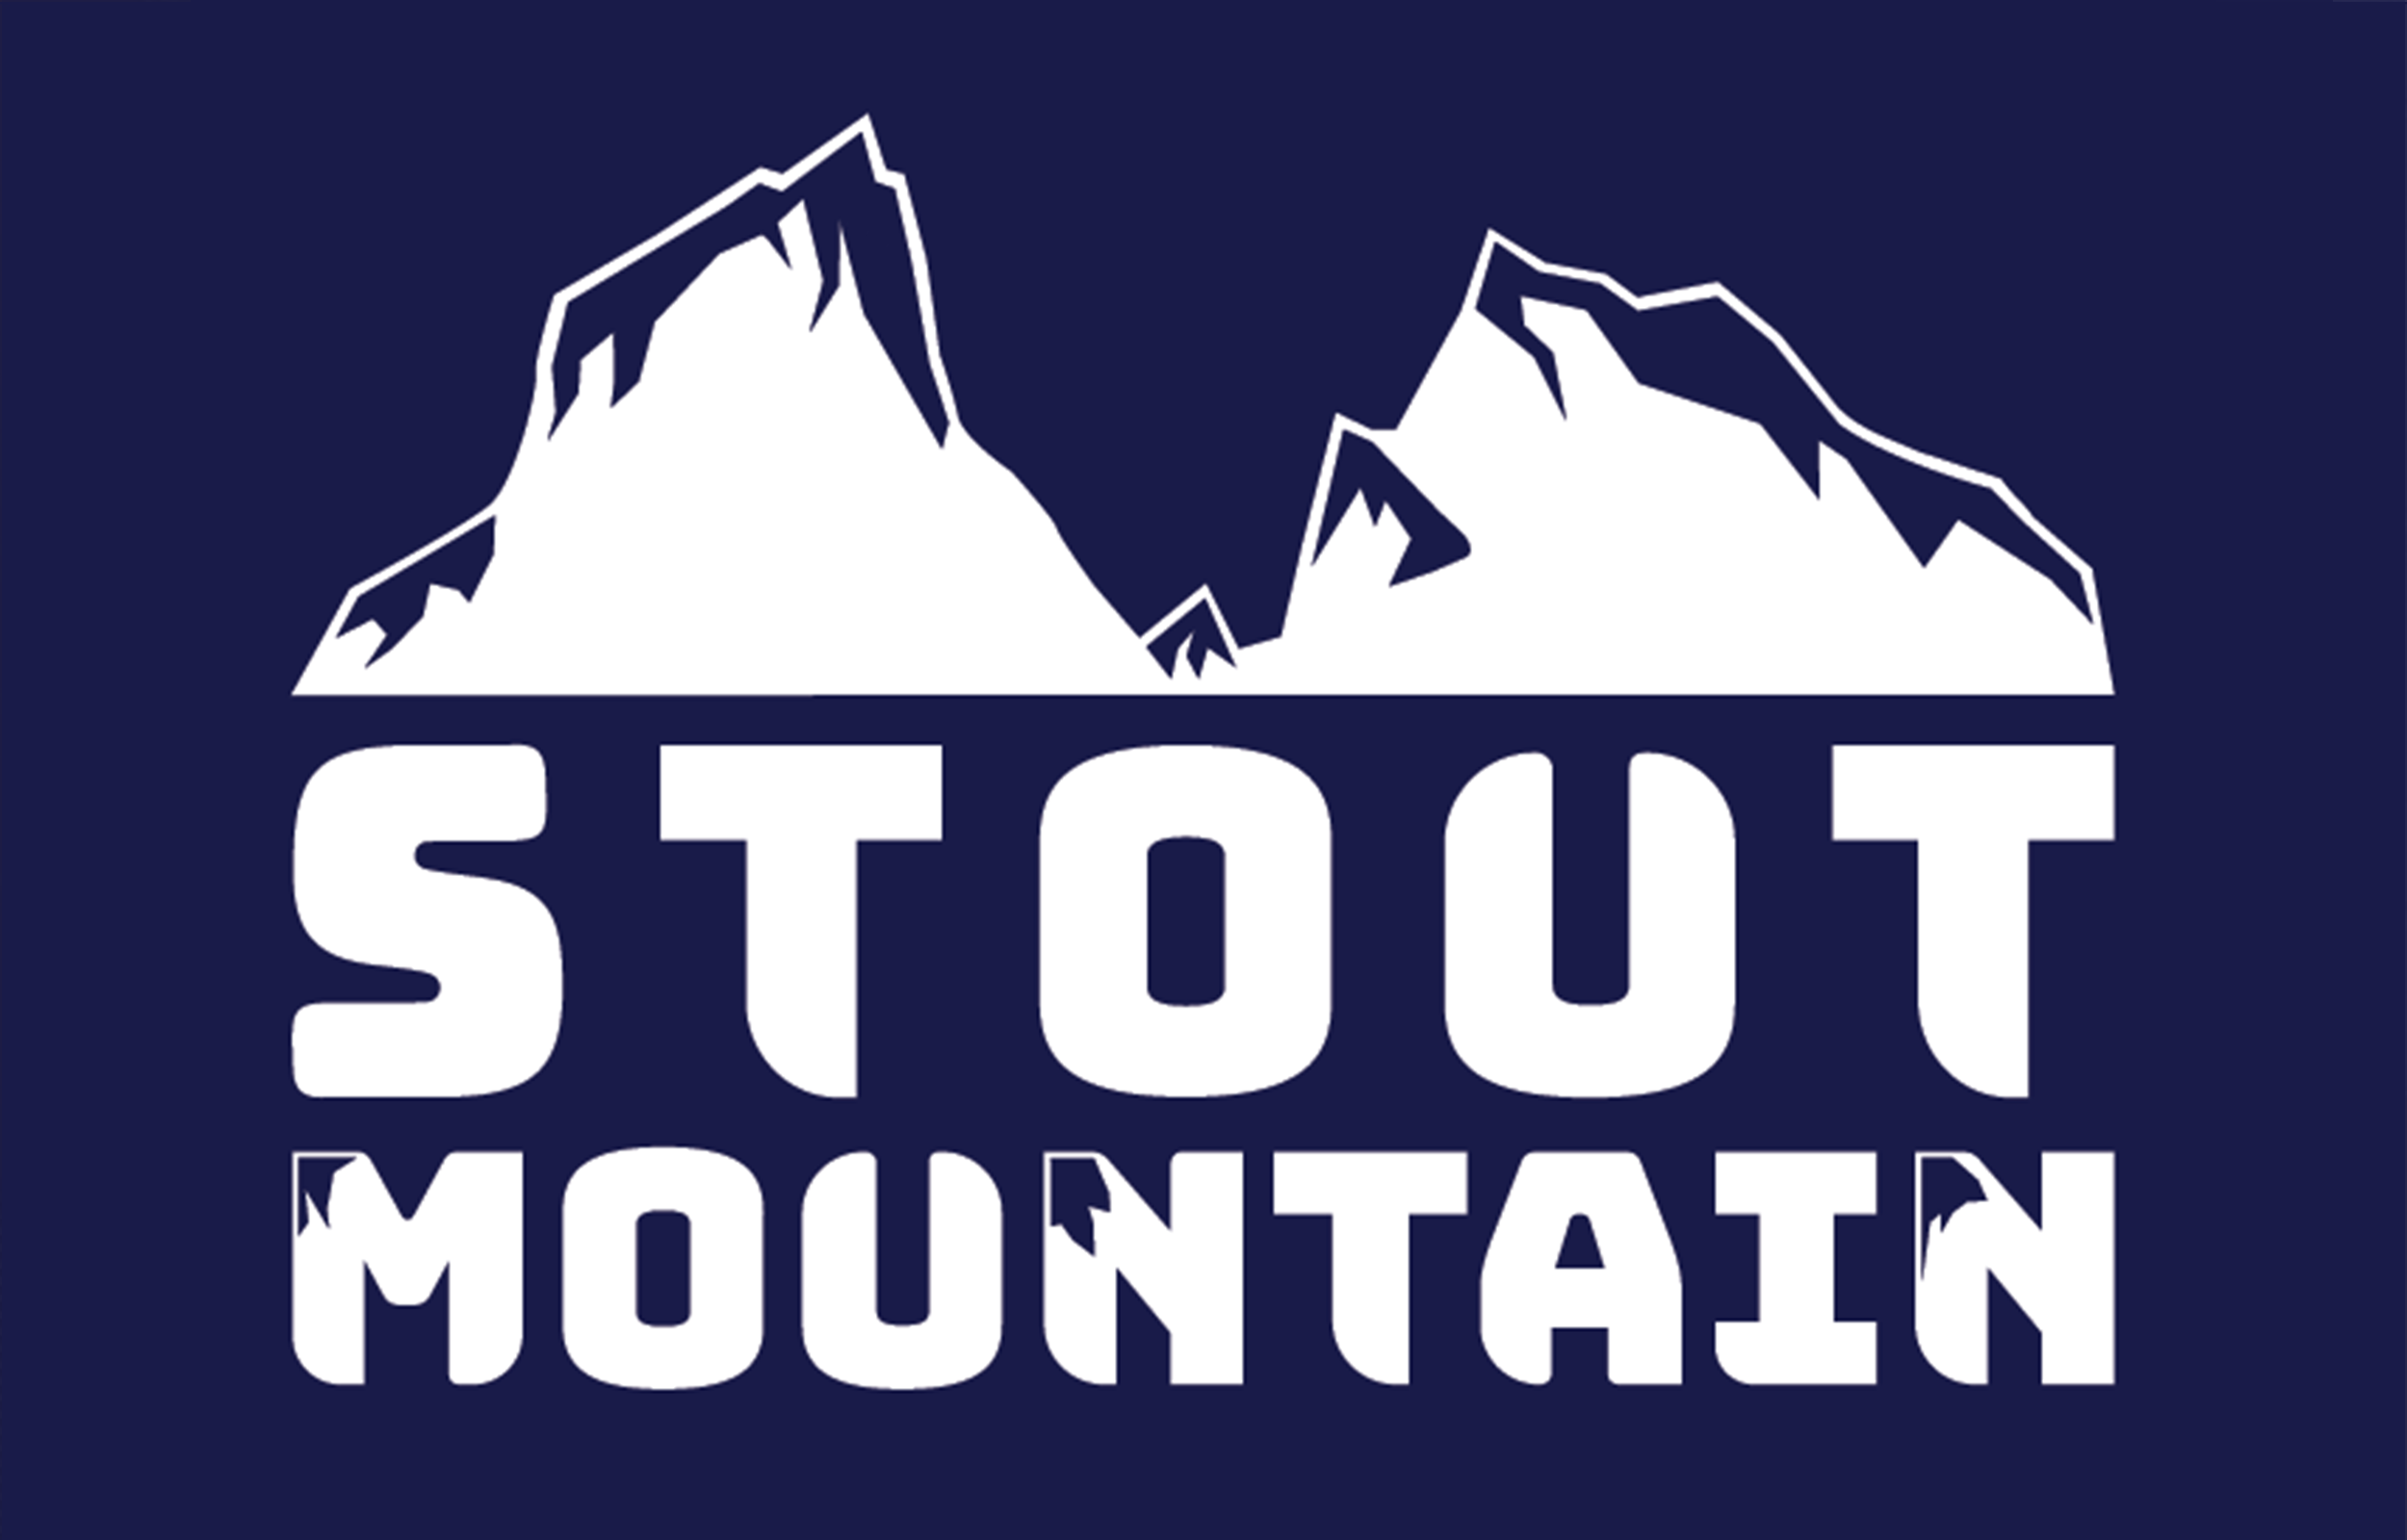 Stout Mountain